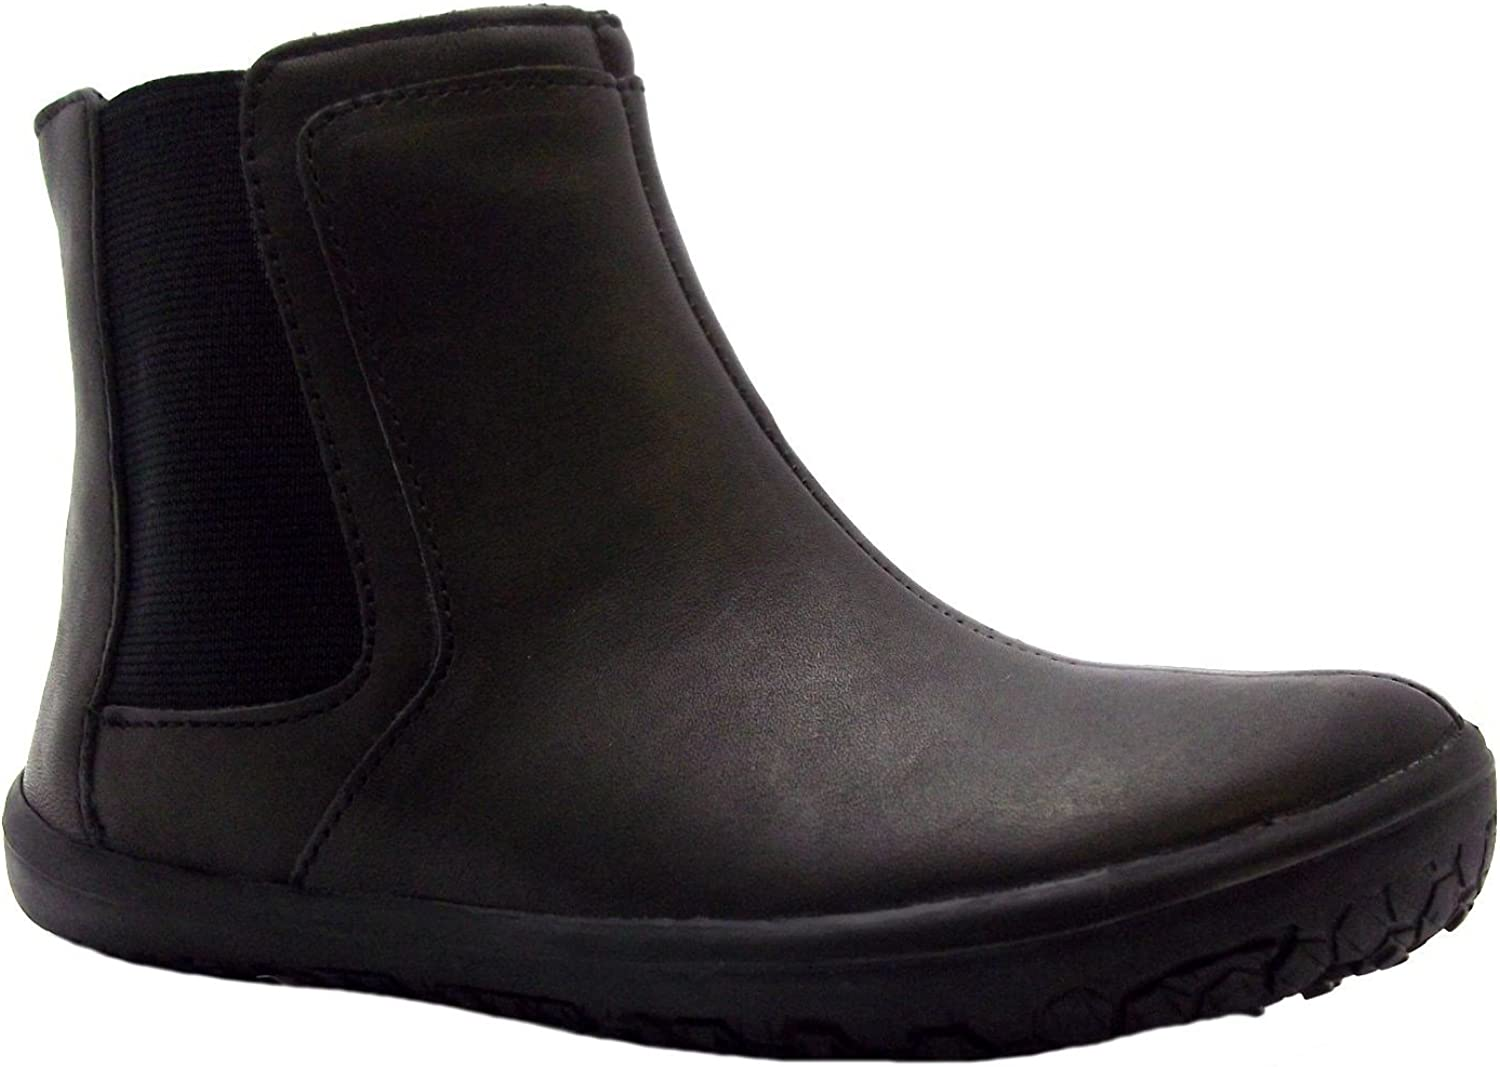 Vivobarefoot Kids Chelsea Leather Boot Shoes